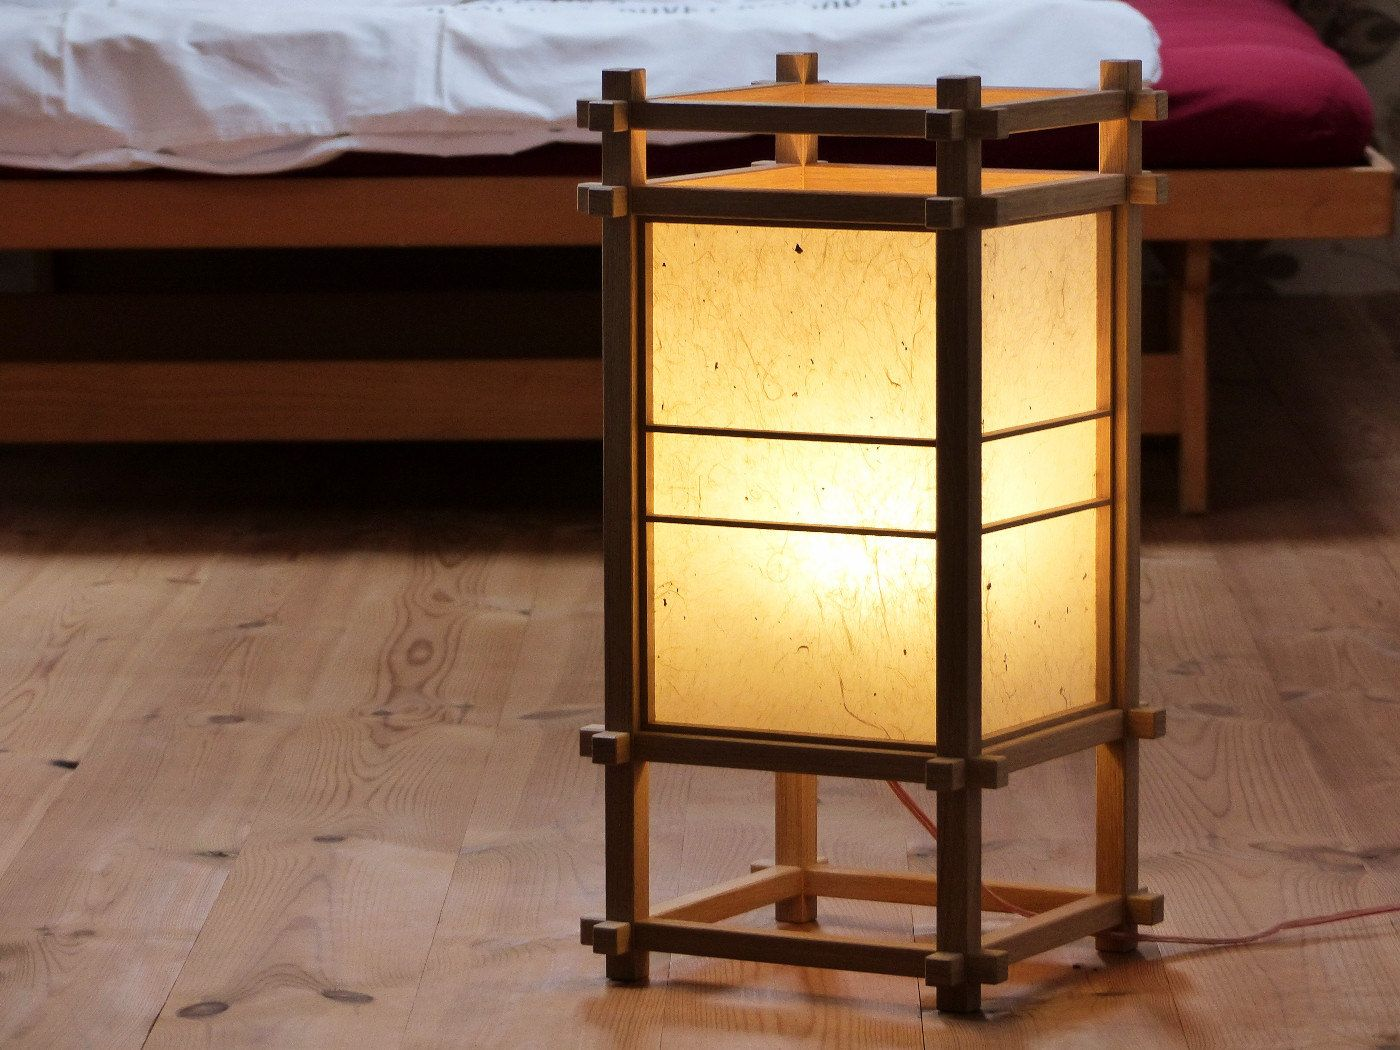 10 Japanese Lamps Selection Id Lights Japanese Lamps Floor Lamp Design Wooden Lamp